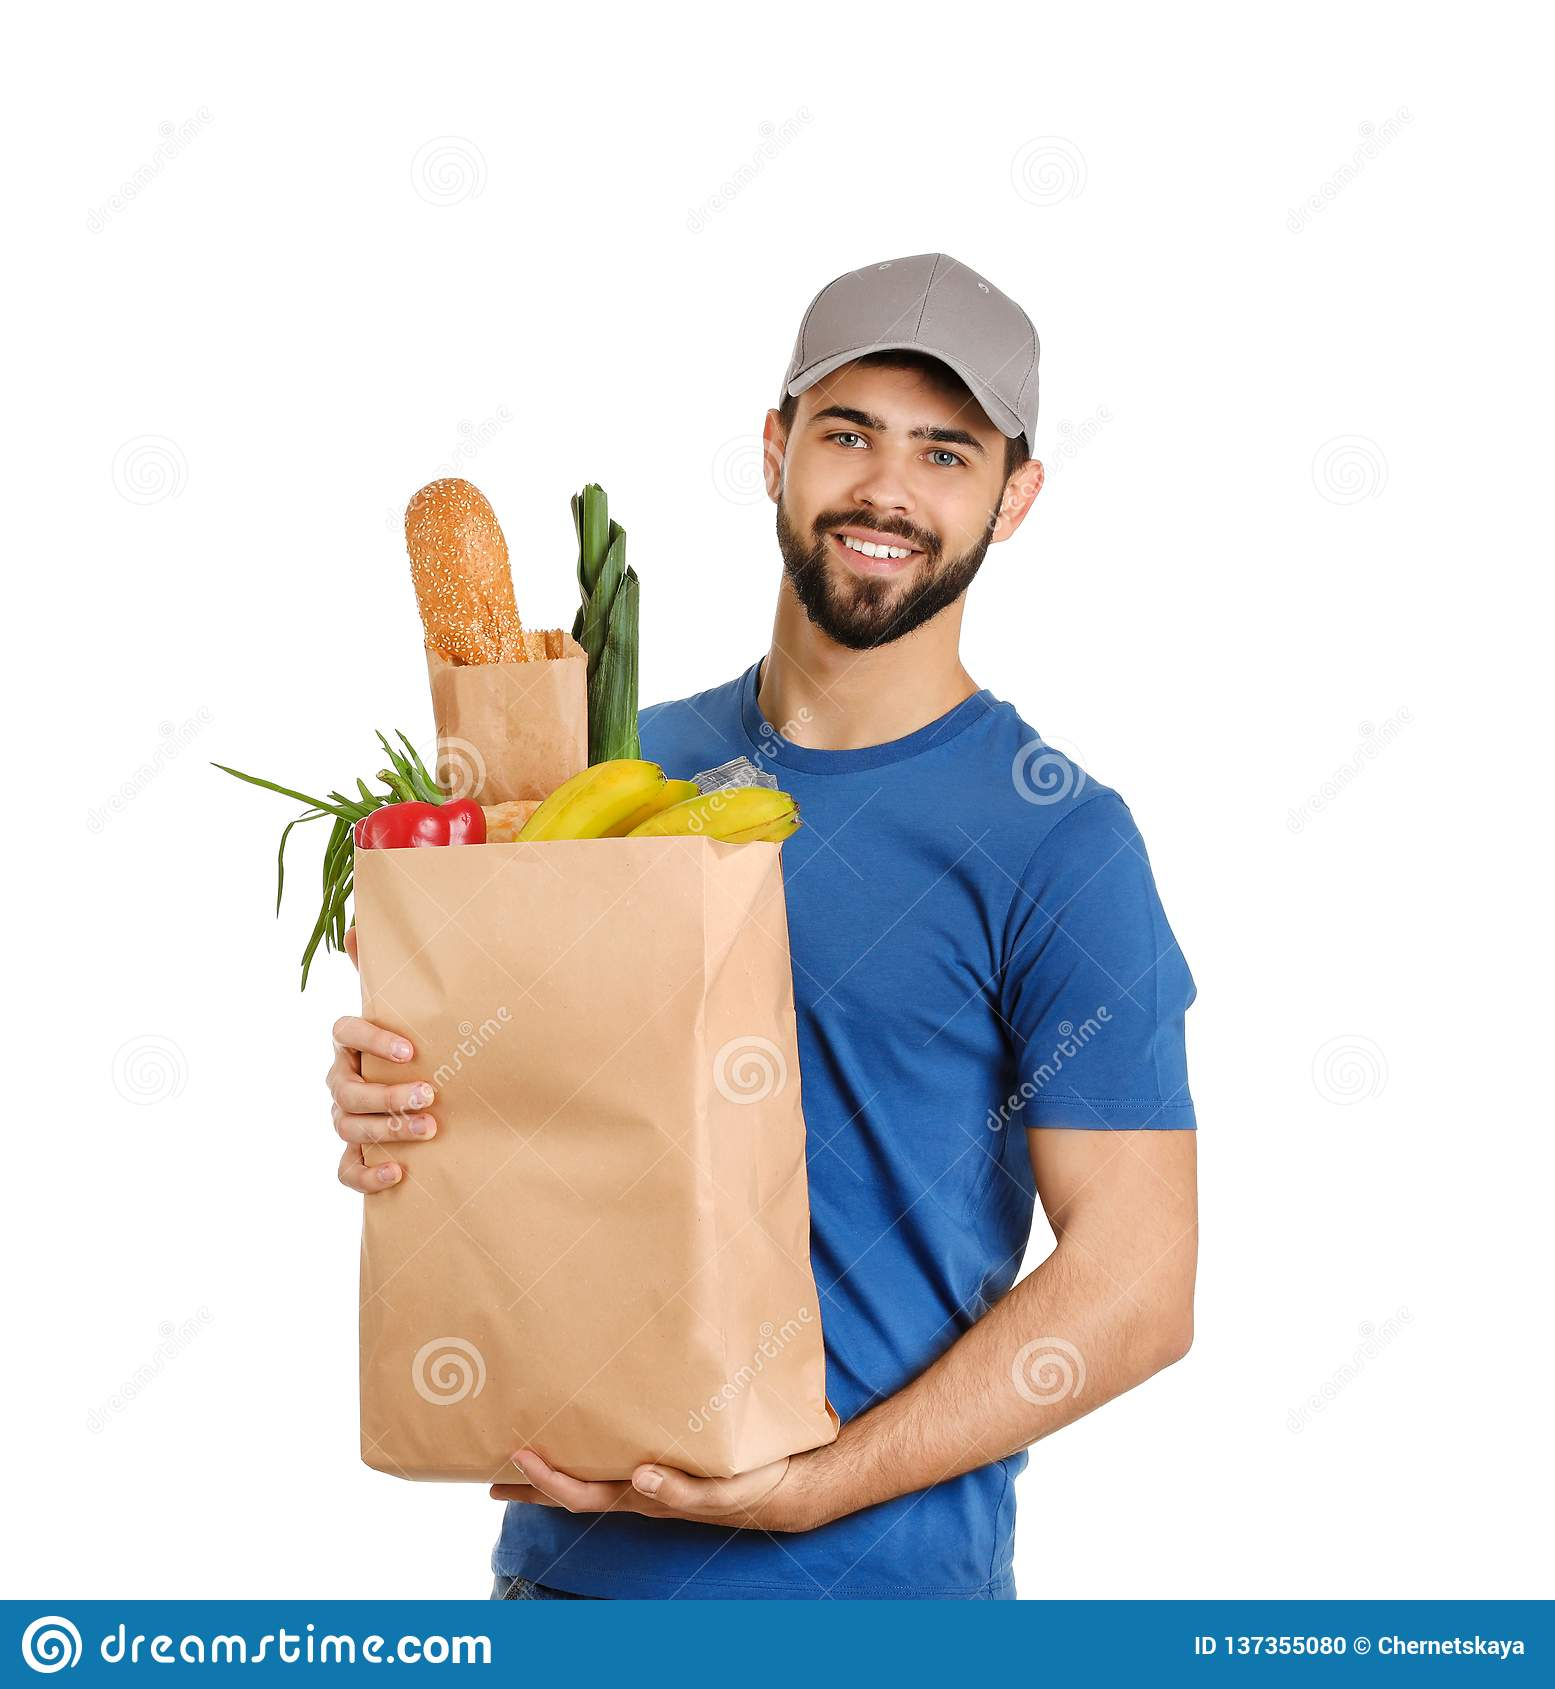 Man holding paper bag with fresh products on white. Food delivery service